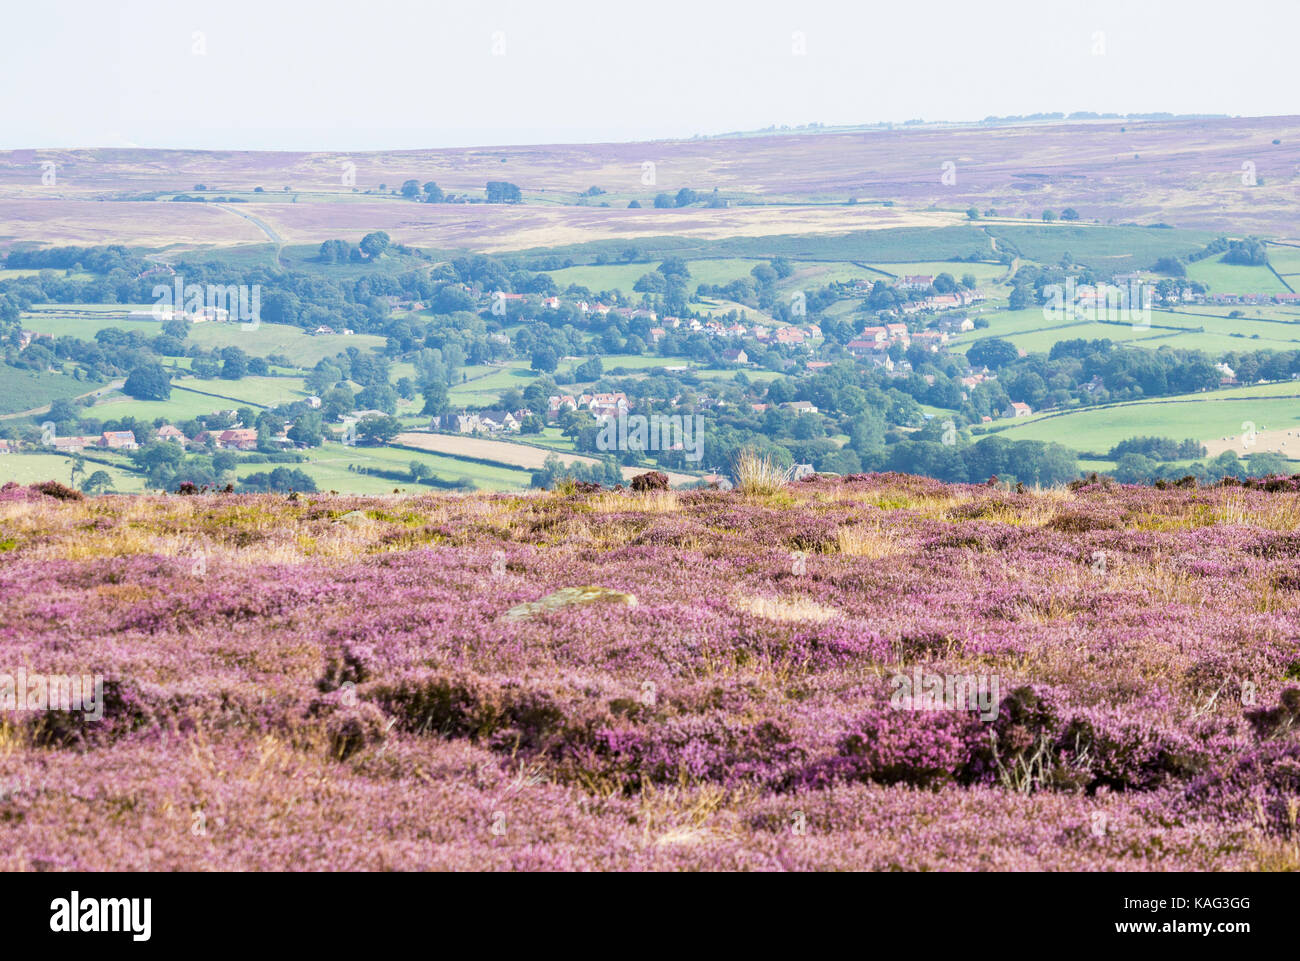 View over Westerdale village from Castleton Rigg. North York Moors National Park, North Yorkshire, England. UK - Stock Image